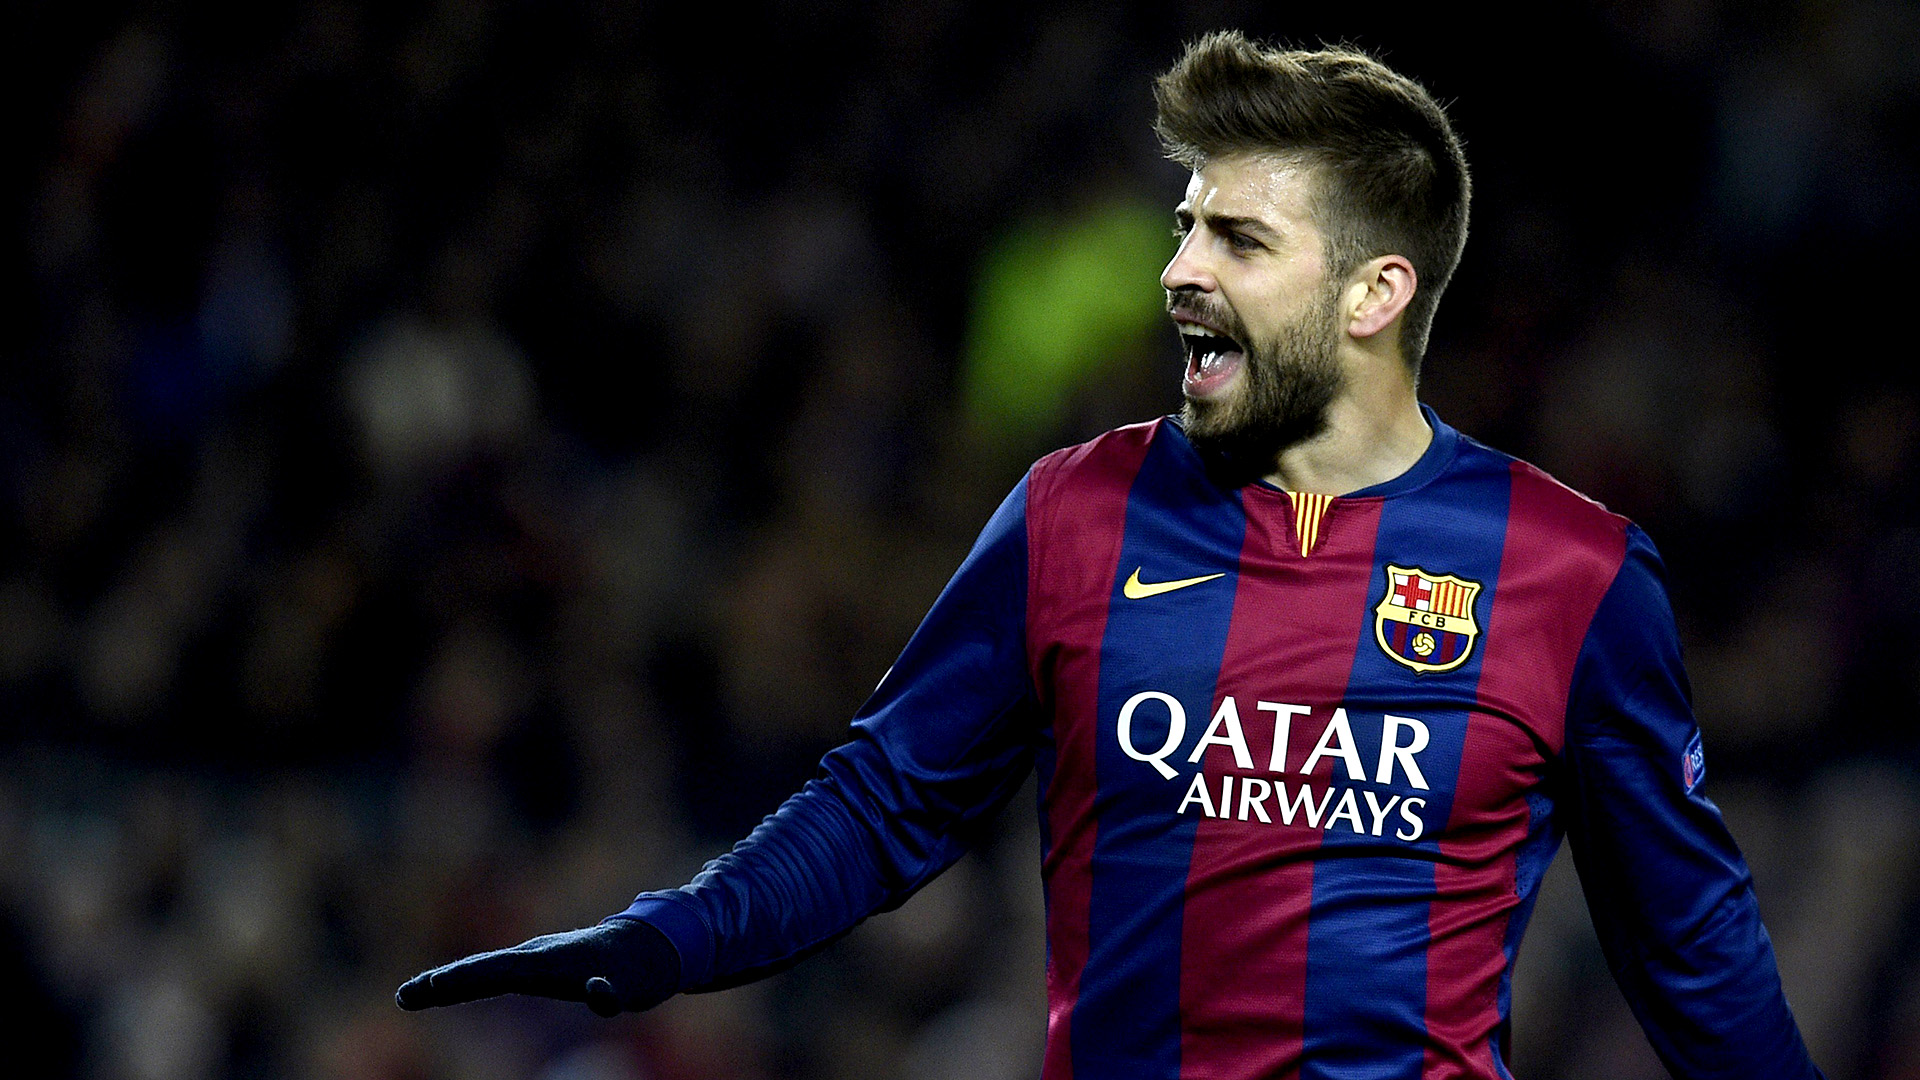 Pique is Madrid's scourge